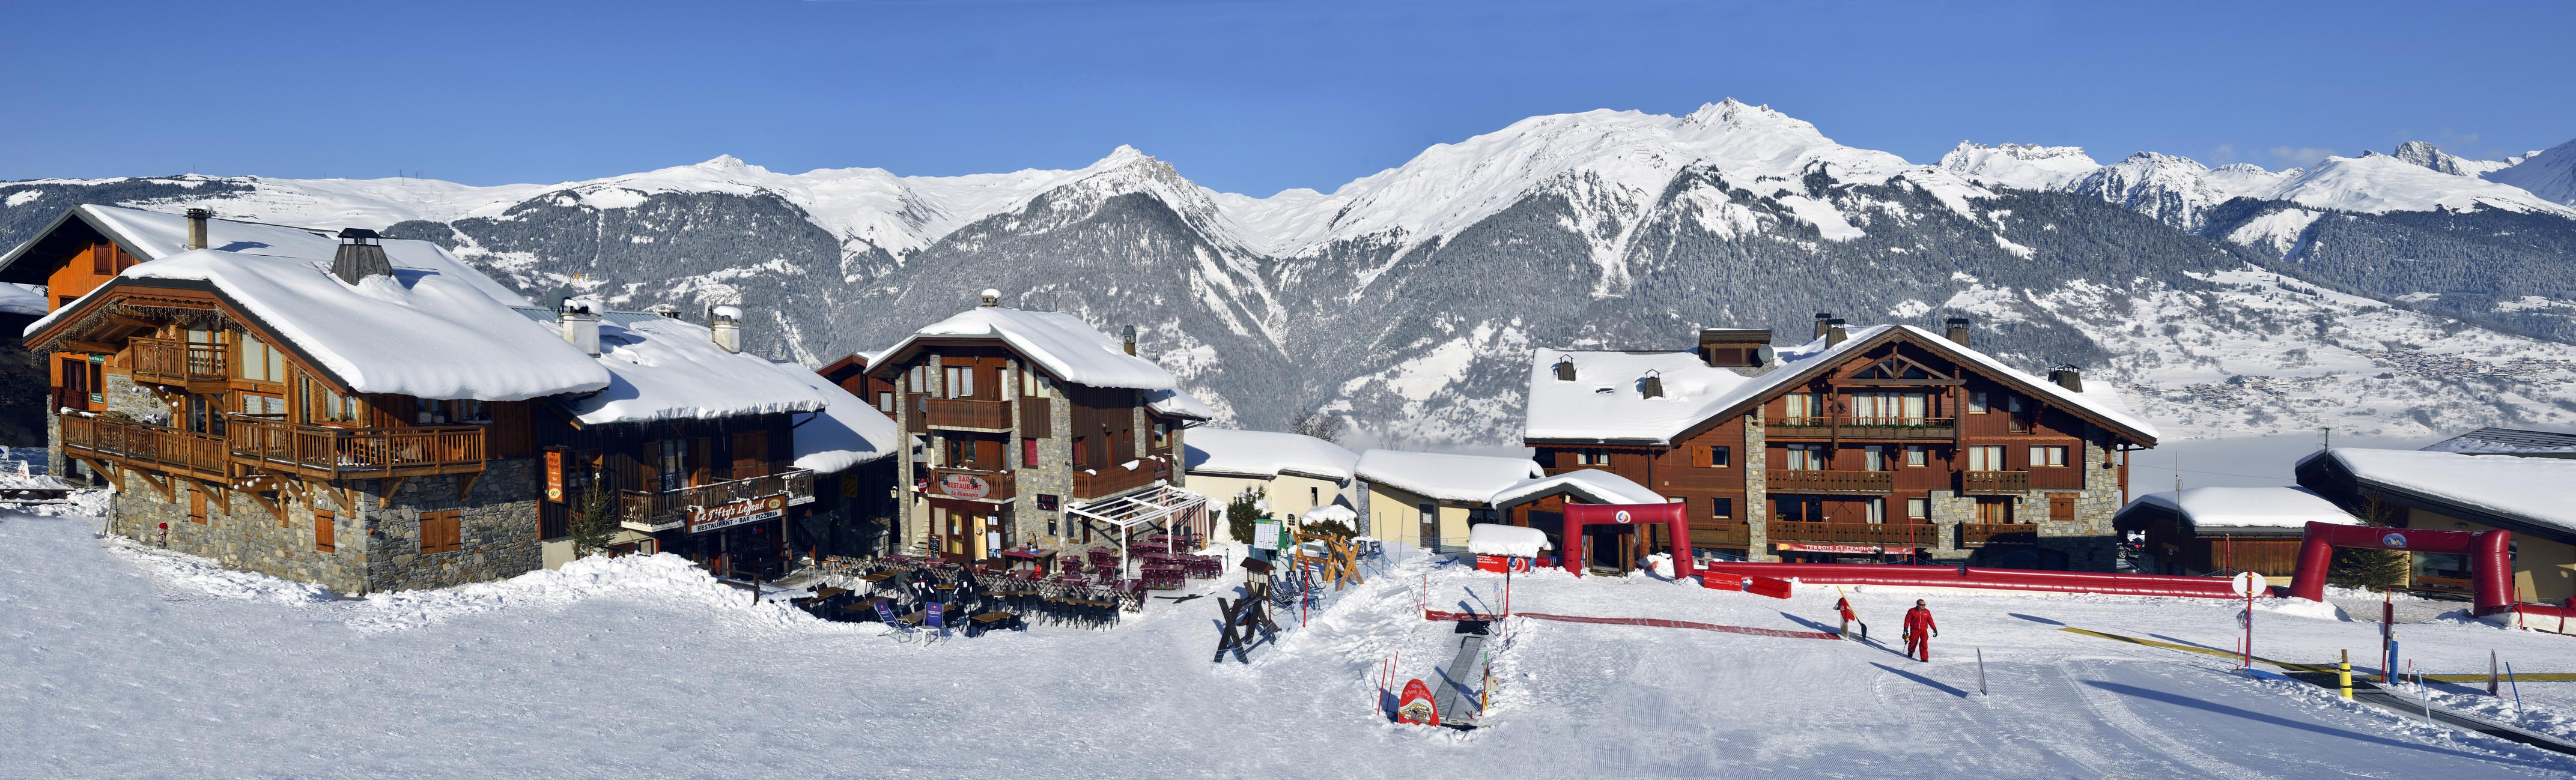 ski resort La Plagne